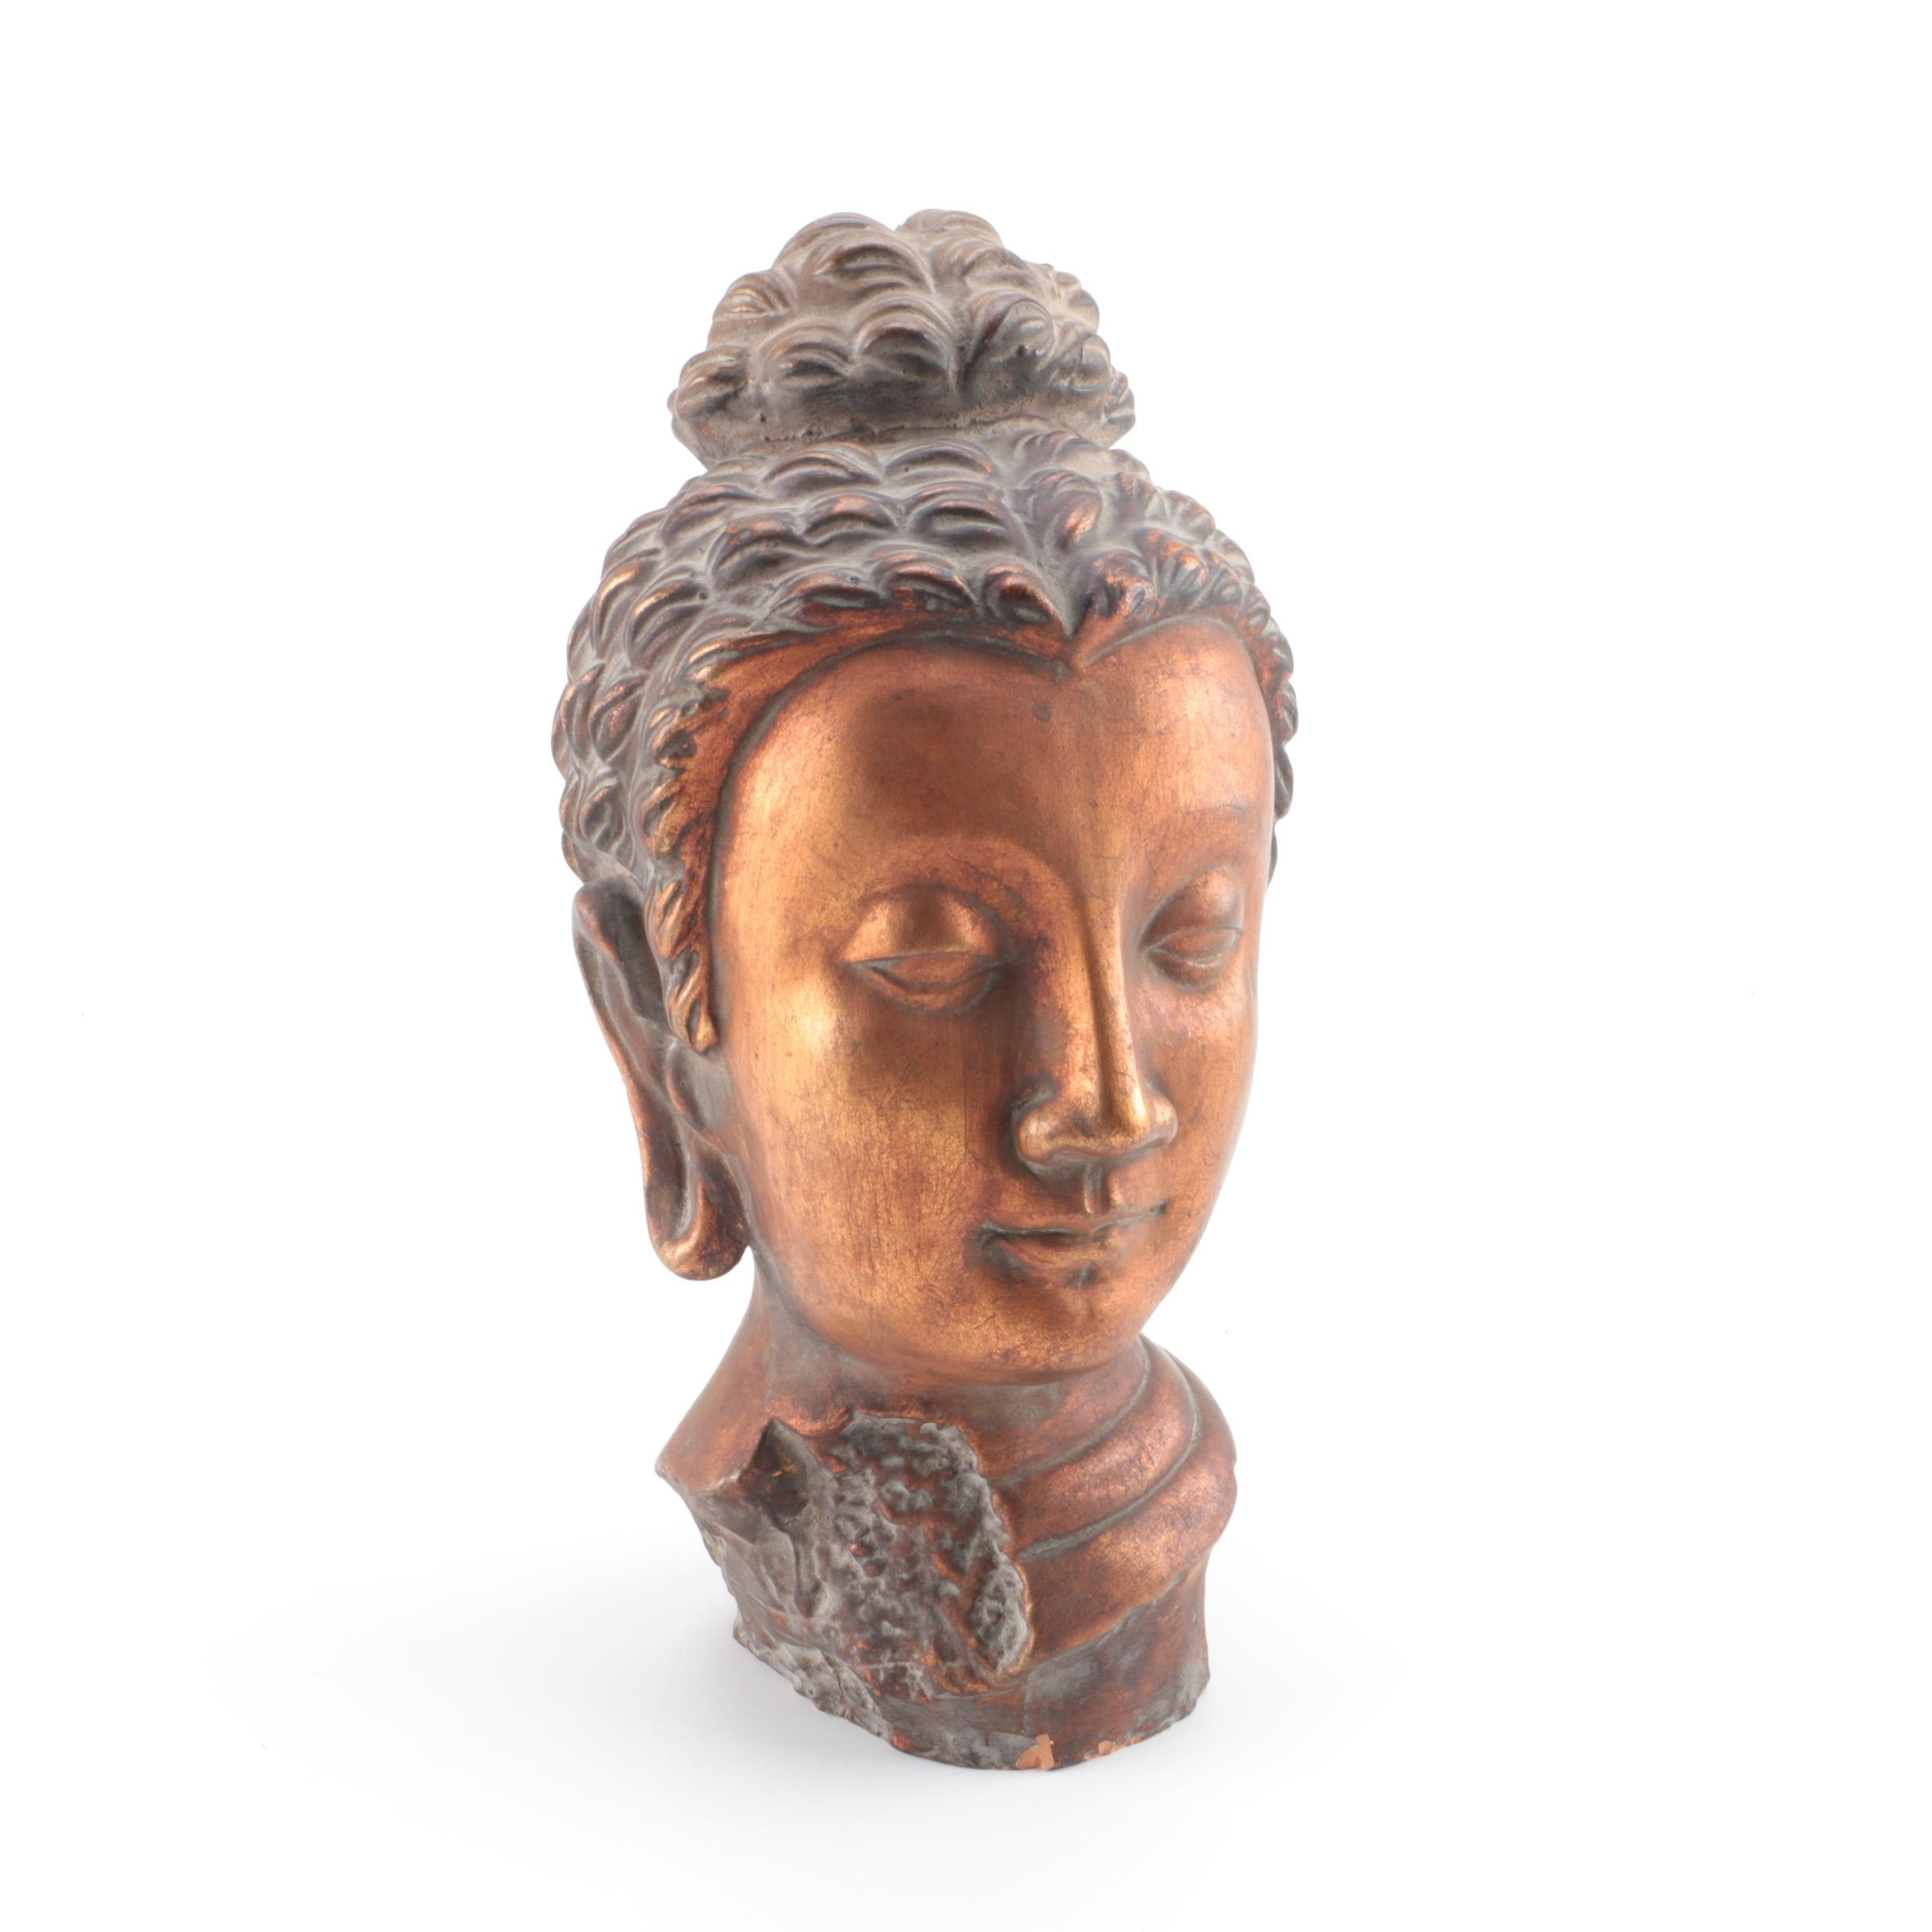 Chinese Ceramic Buddha Head Bust and Urn